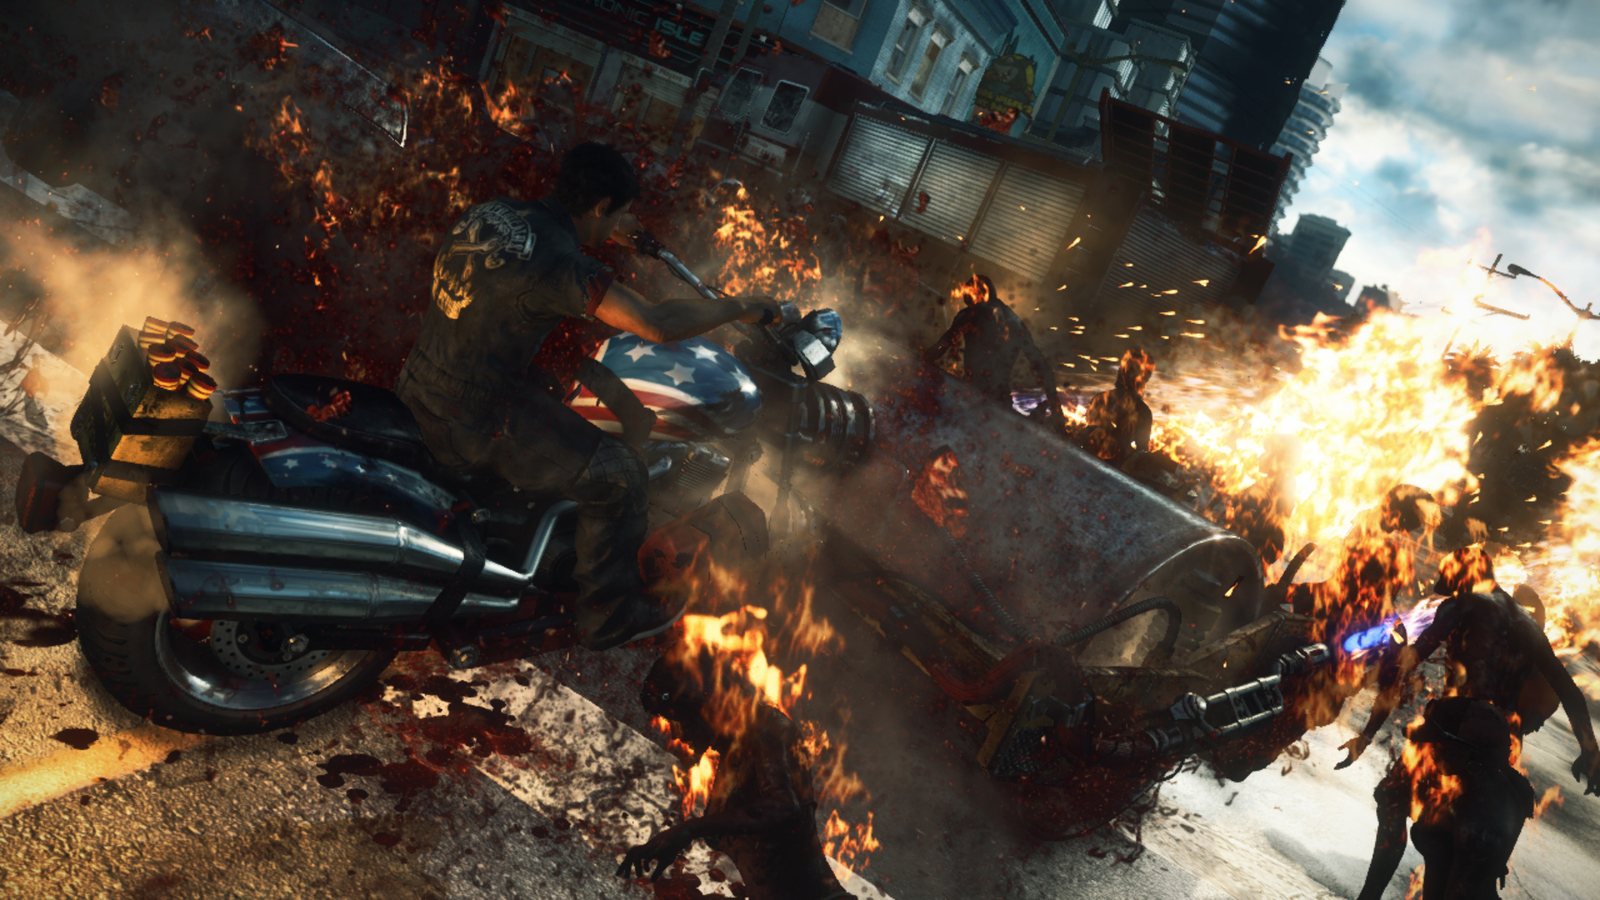 Dead Rising 3 for Xbox One image